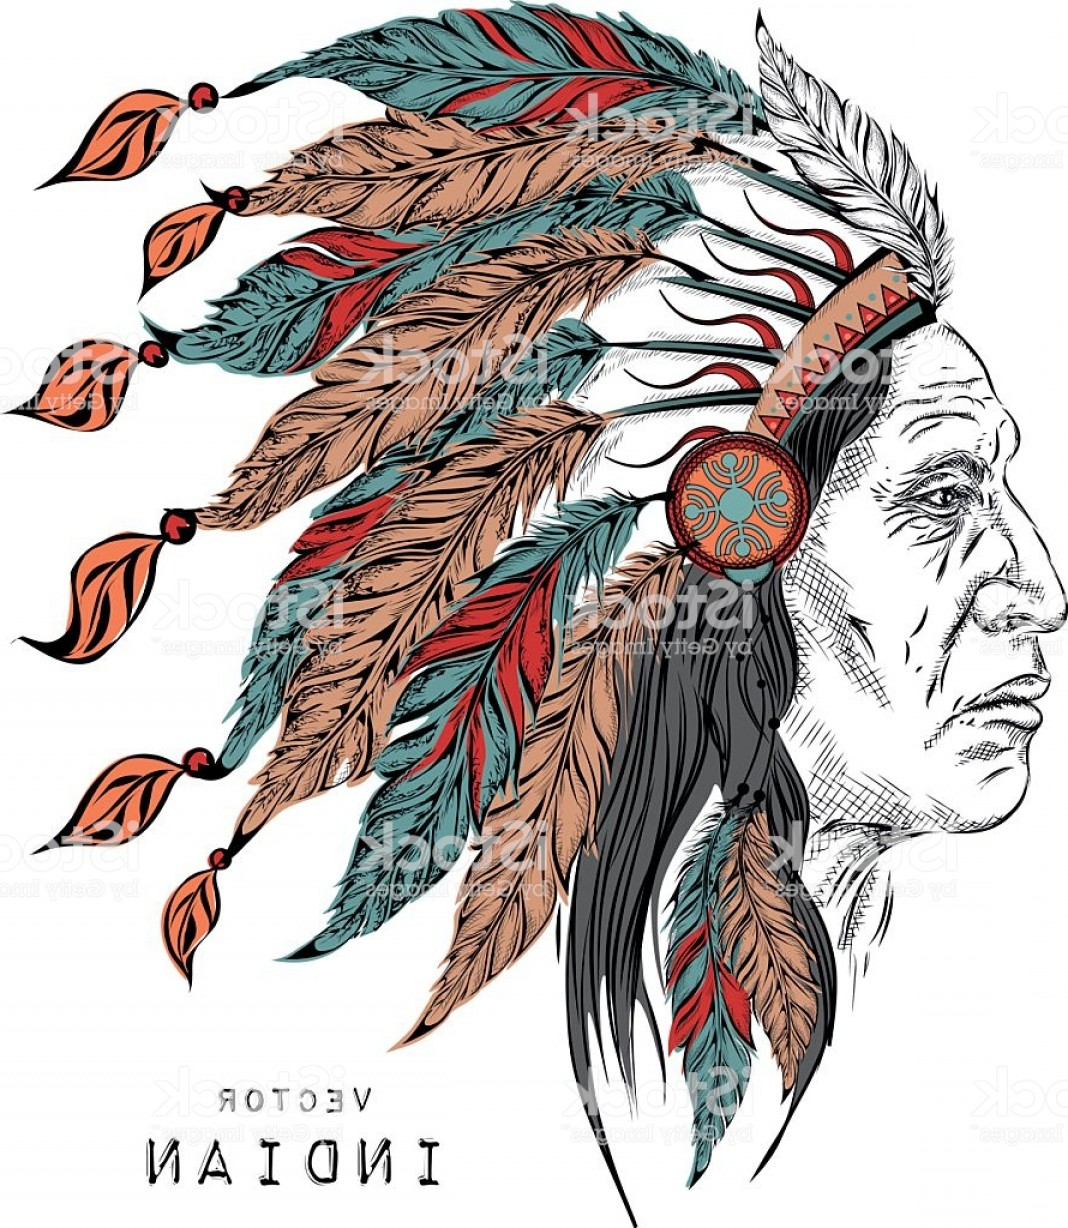 American Indian Chief Vector: Man In The Native American Indian Chief Vector Illustration Gm